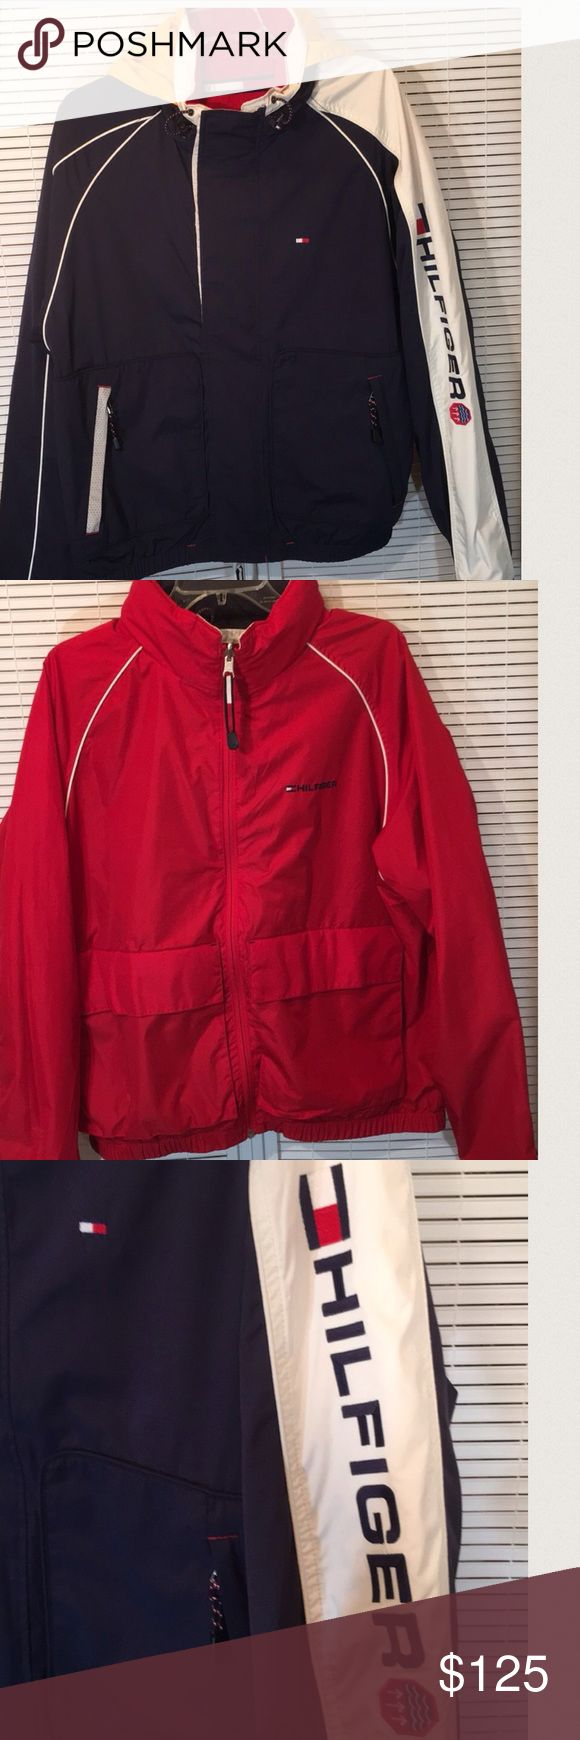 """Tommy Hilfiger Reversible Retro Jacket Large EUC This is a fabulous jacket that my husband never wore. He gained weight by spring and couldn't wear it. It has been stored in my Cedar chest and is in perfect condition. Chest is 50"""". Length is 25 1/2"""". Sleeves are raglan and measure from arm pit to hem 22 1/2"""". The blue side has 2 big pockets that are 10"""" wide and 9"""" tall with a zipper closure. One of the pockets has reflective design. Hidden yellow hood. Embroidered logo down left sleeve…"""